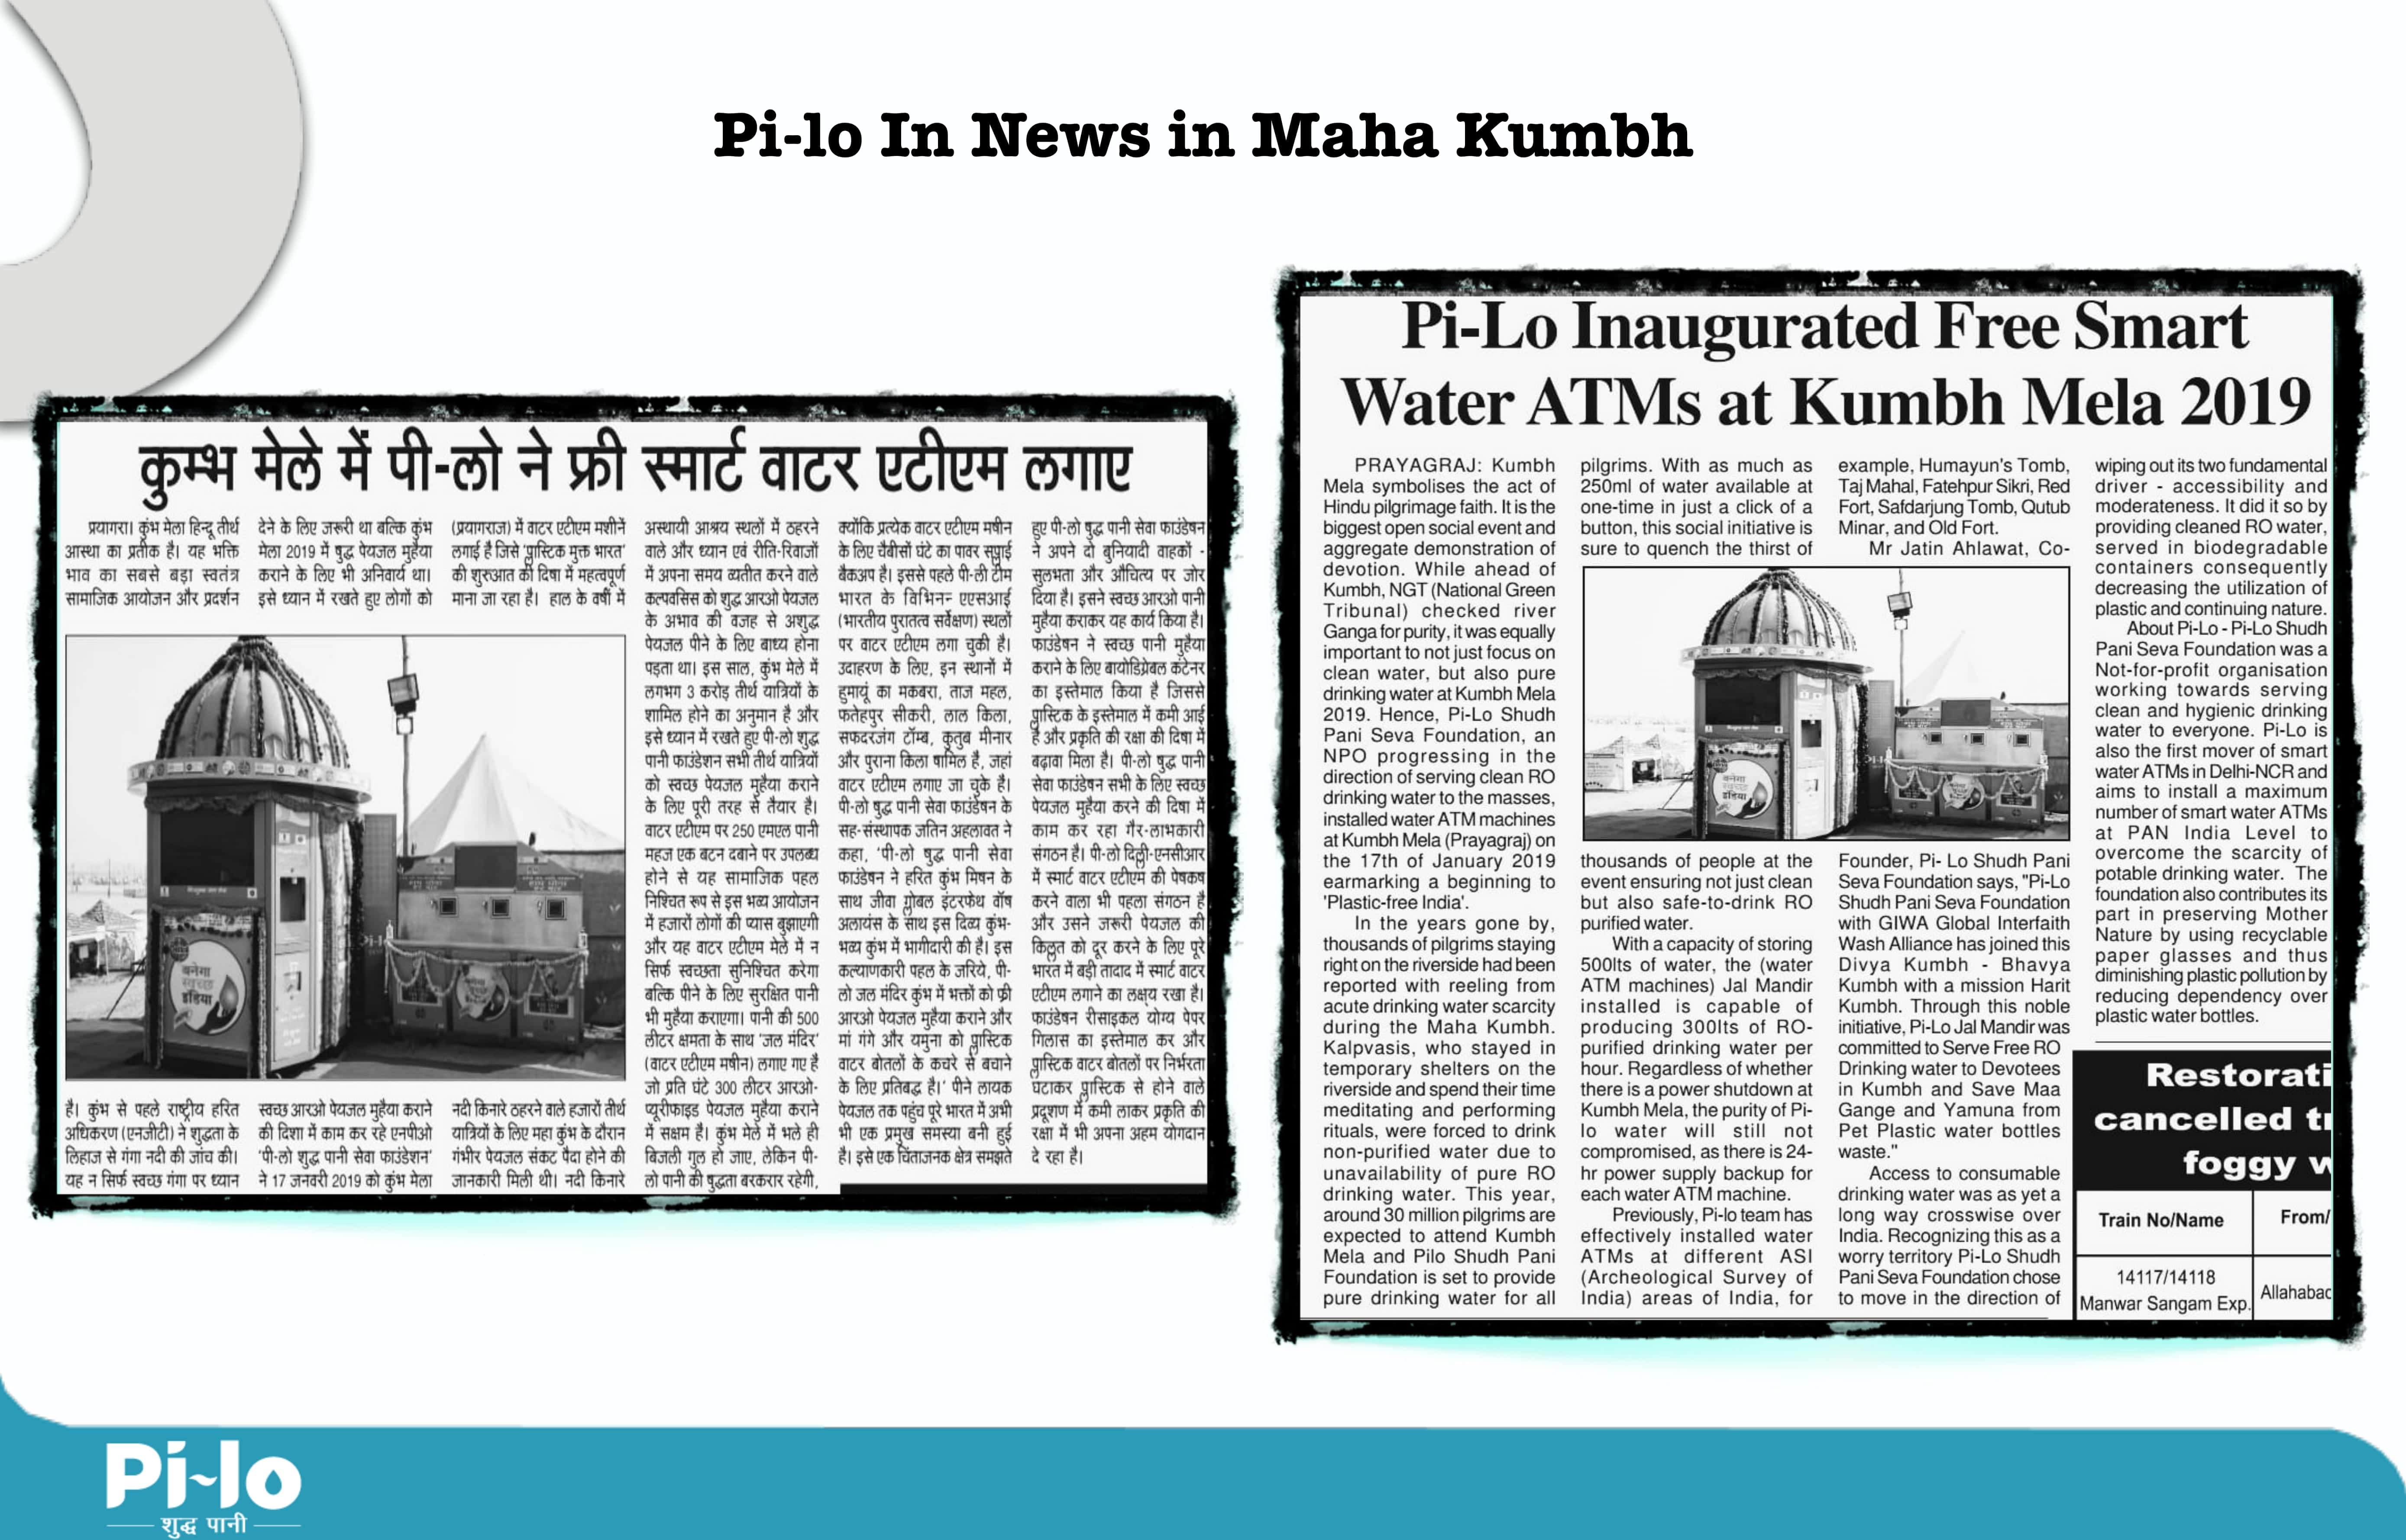 //www.pi-lo.in/wp-content/uploads/2019/07/news-in-kumbh-new-file-01-min.jpg